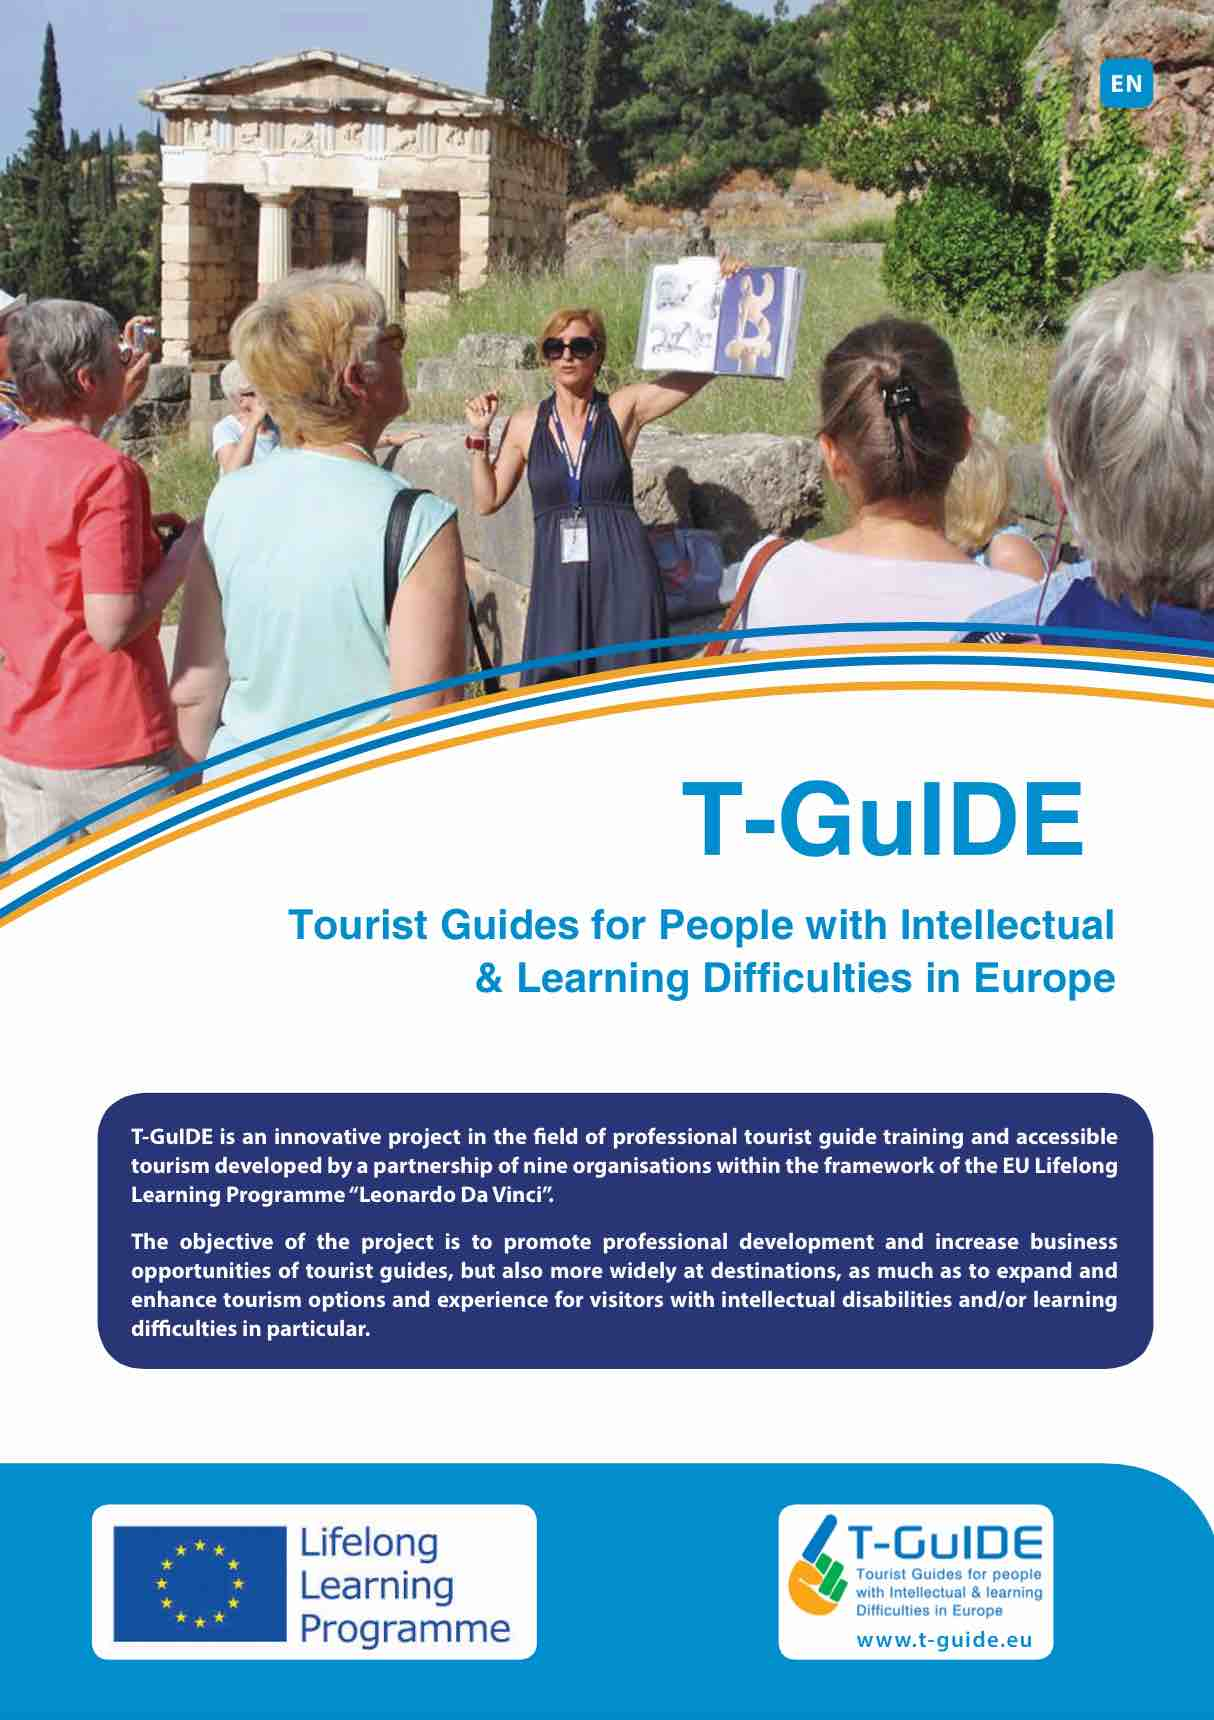 Image of T-Guide brochure